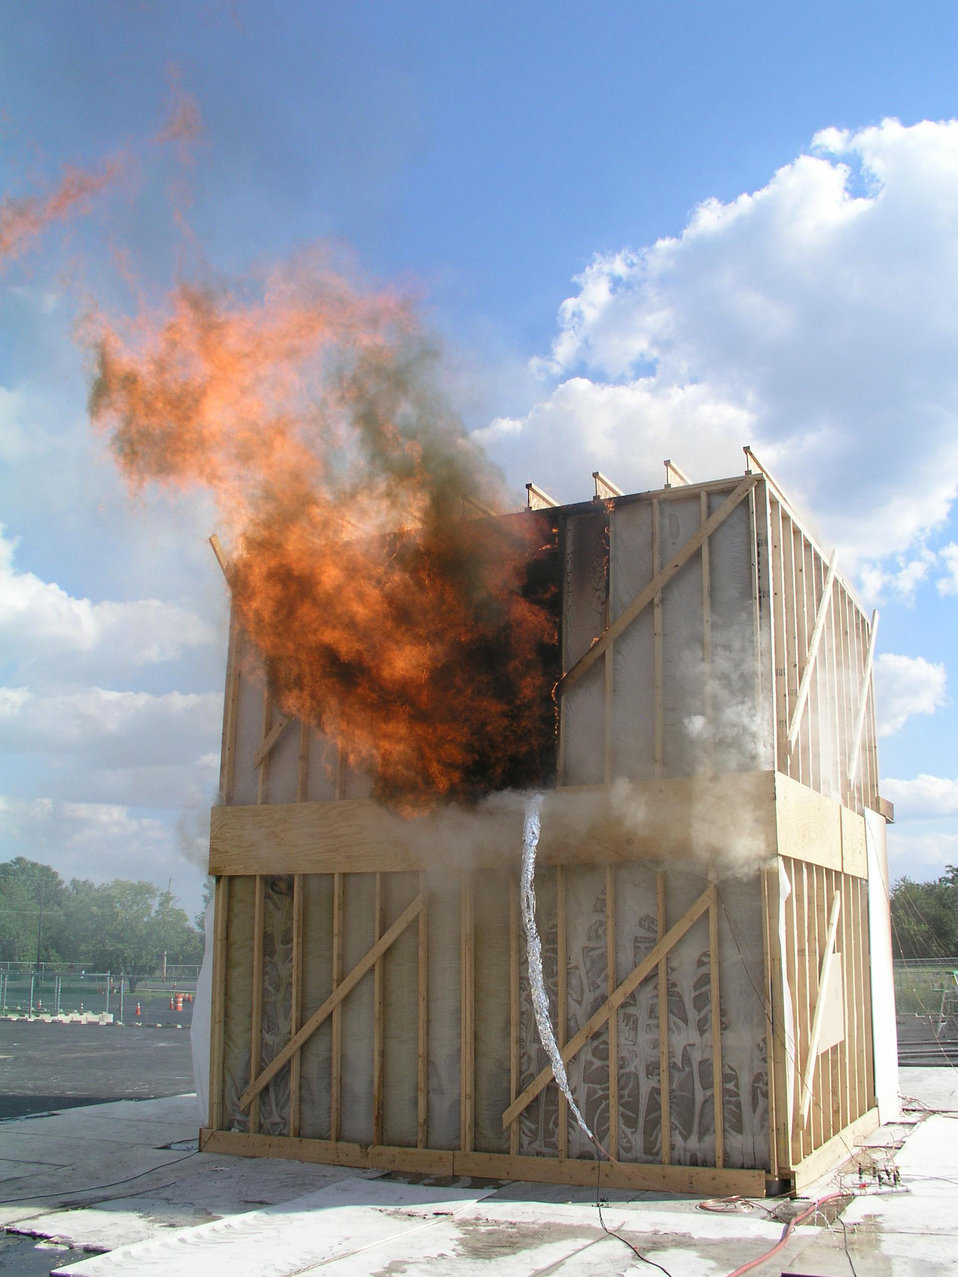 Fire research, structural collapse hazards, warning devices